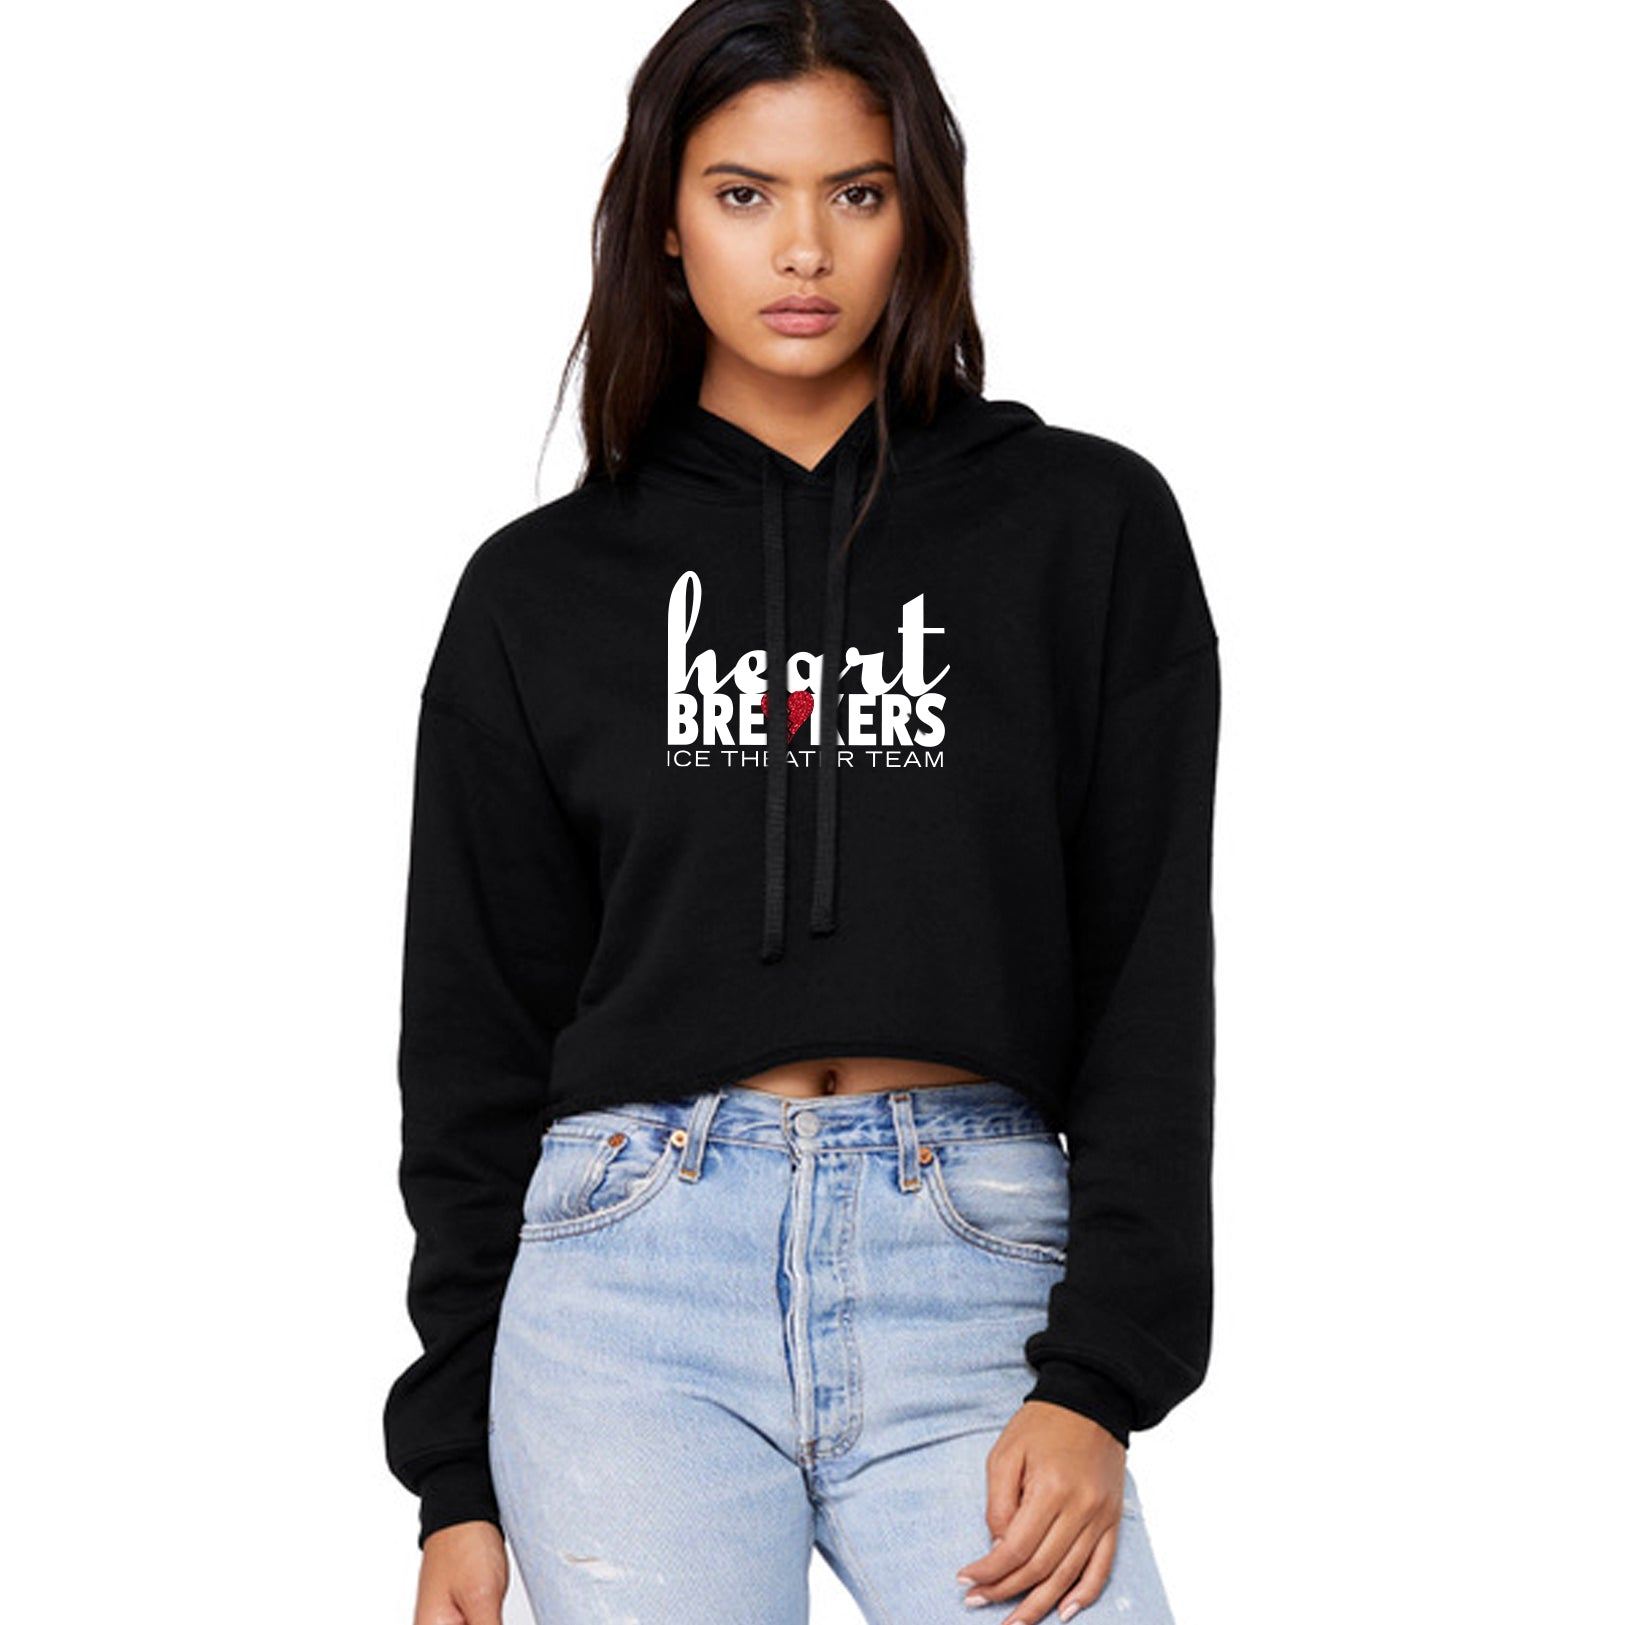 Heartbreakers Cropped Hooded Sweatshirt